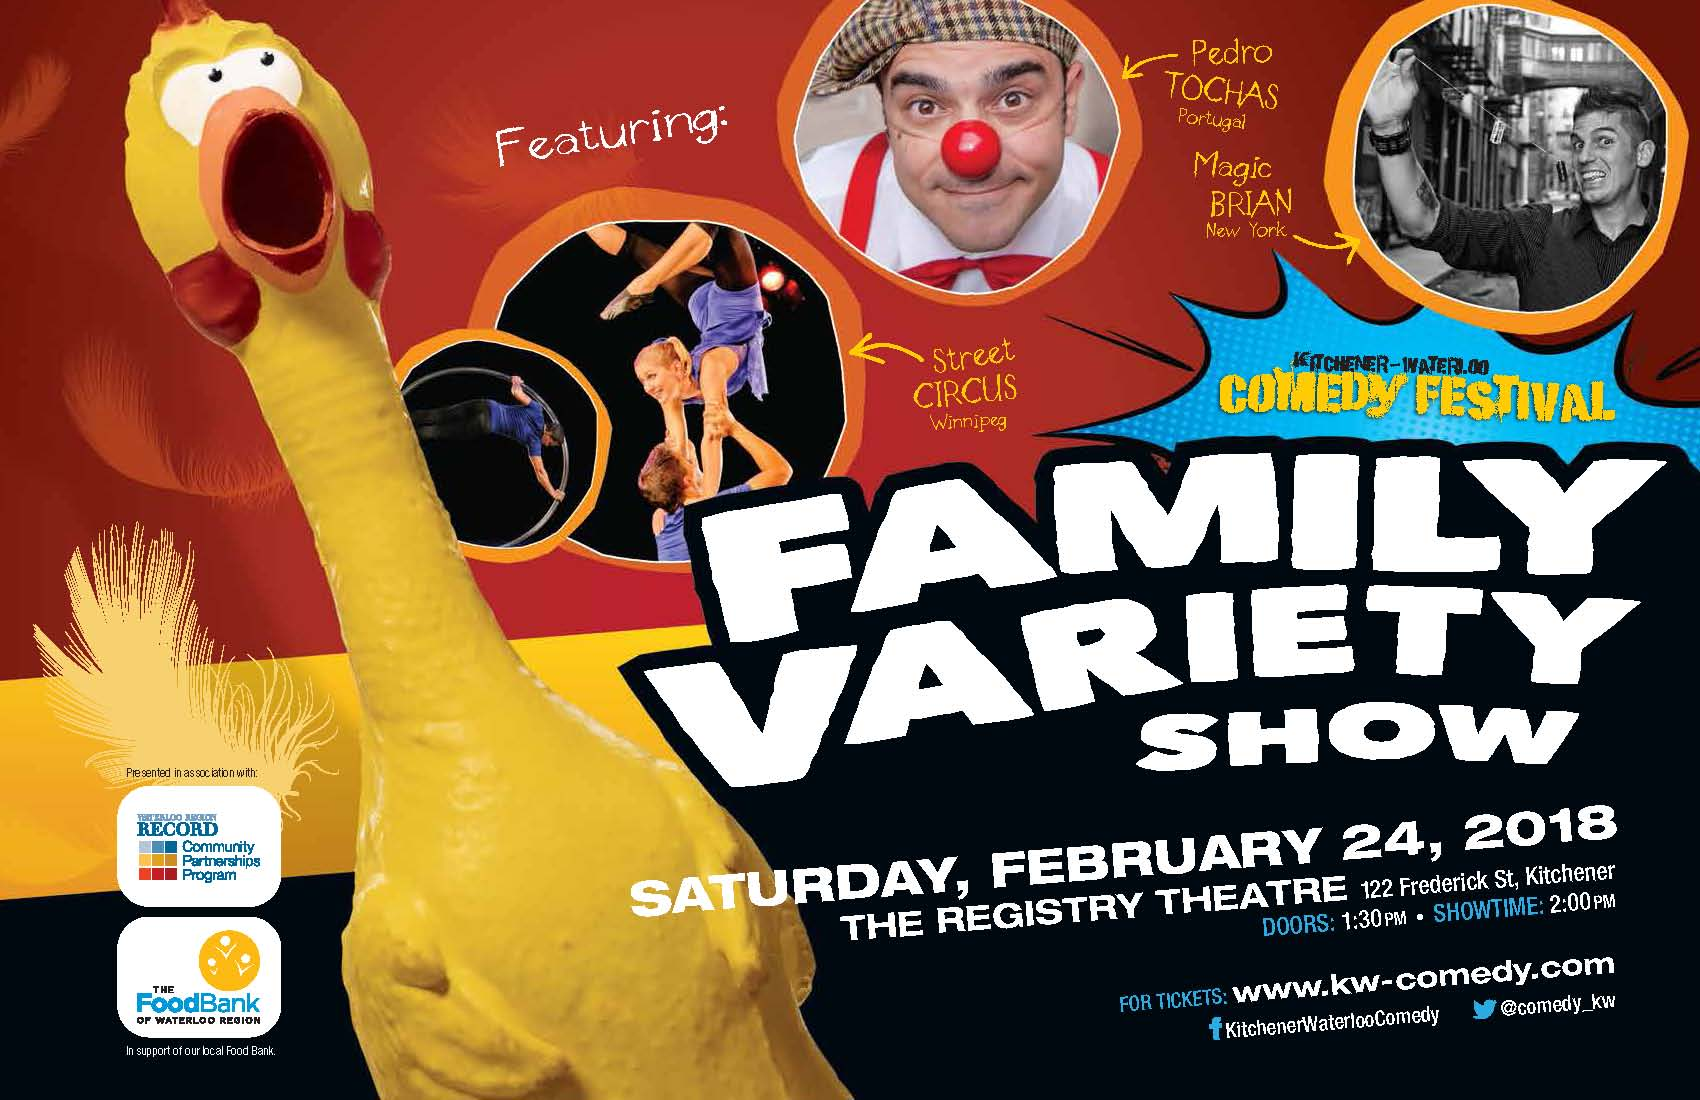 KW Comedy Festival - Family Variety Show